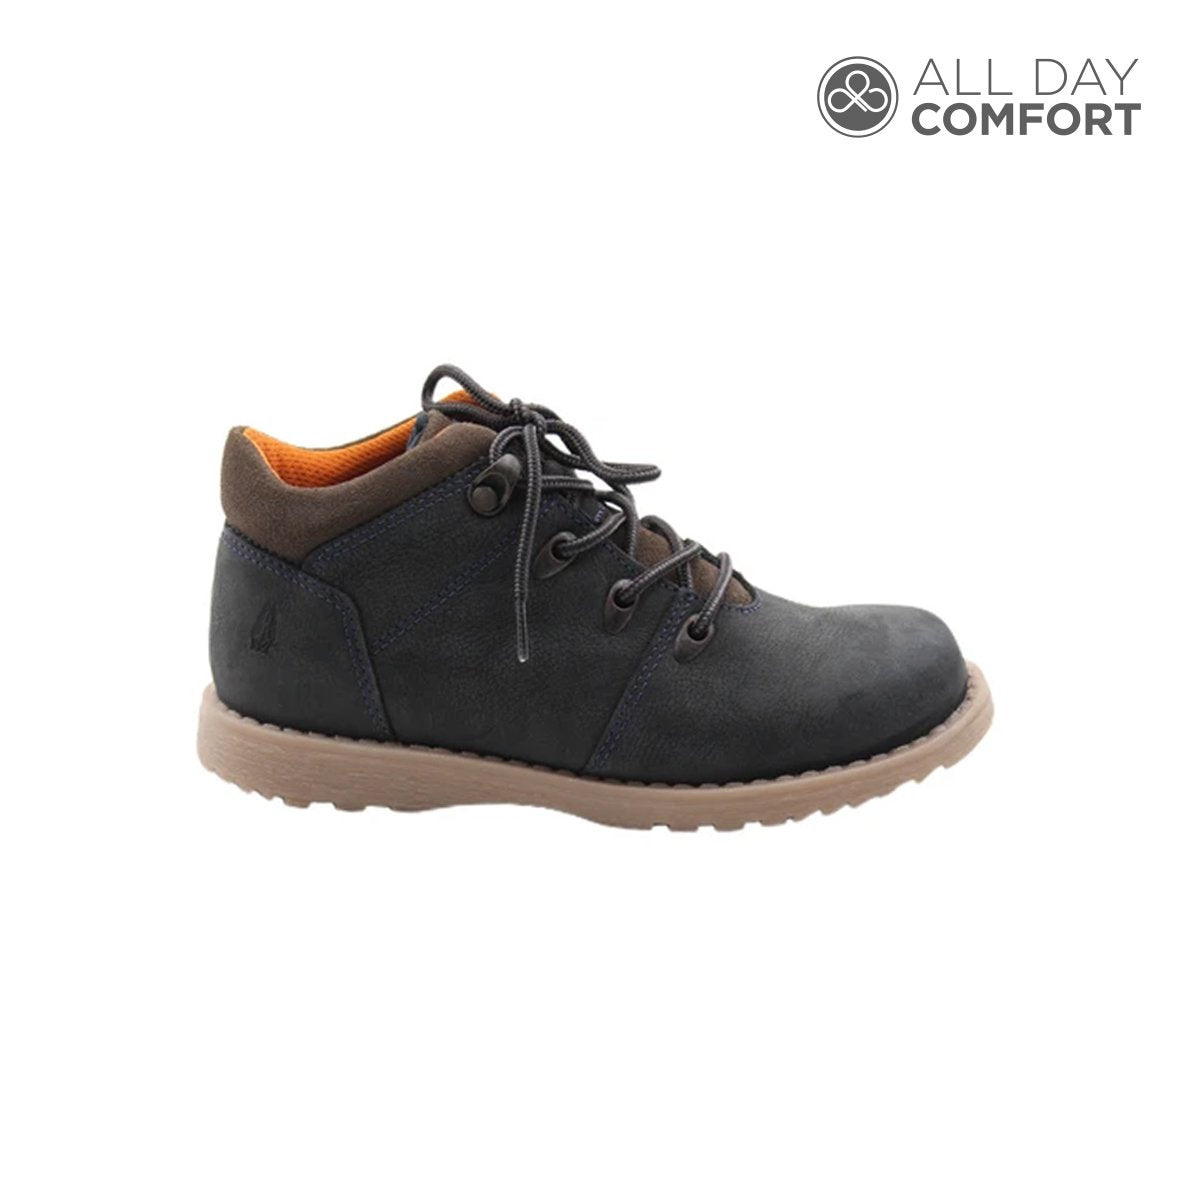 bota andy 2.0 - color navy, 49.99, all day comfort, azul, calzado, cuero, temporada 5, hush puppies, navy, ninos, nií'o, precio regular, comprar, en linea, online, delivery, el salvador, zapatos, hush puppies